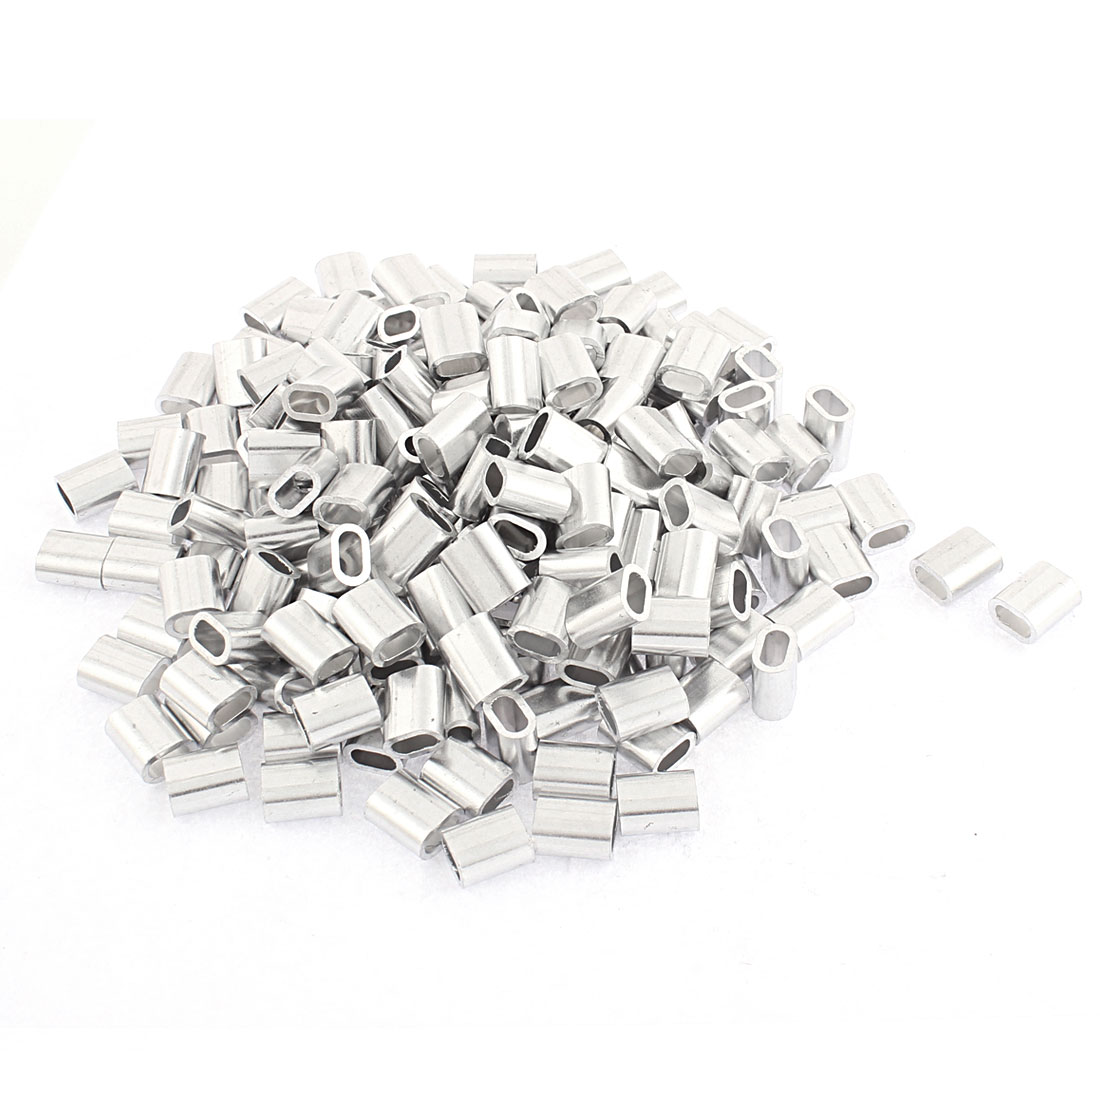 """4mm 5/32"""" Steel Wire Rope Aluminum Ferrules Sleeves Silver Tone 200 Pcs"""